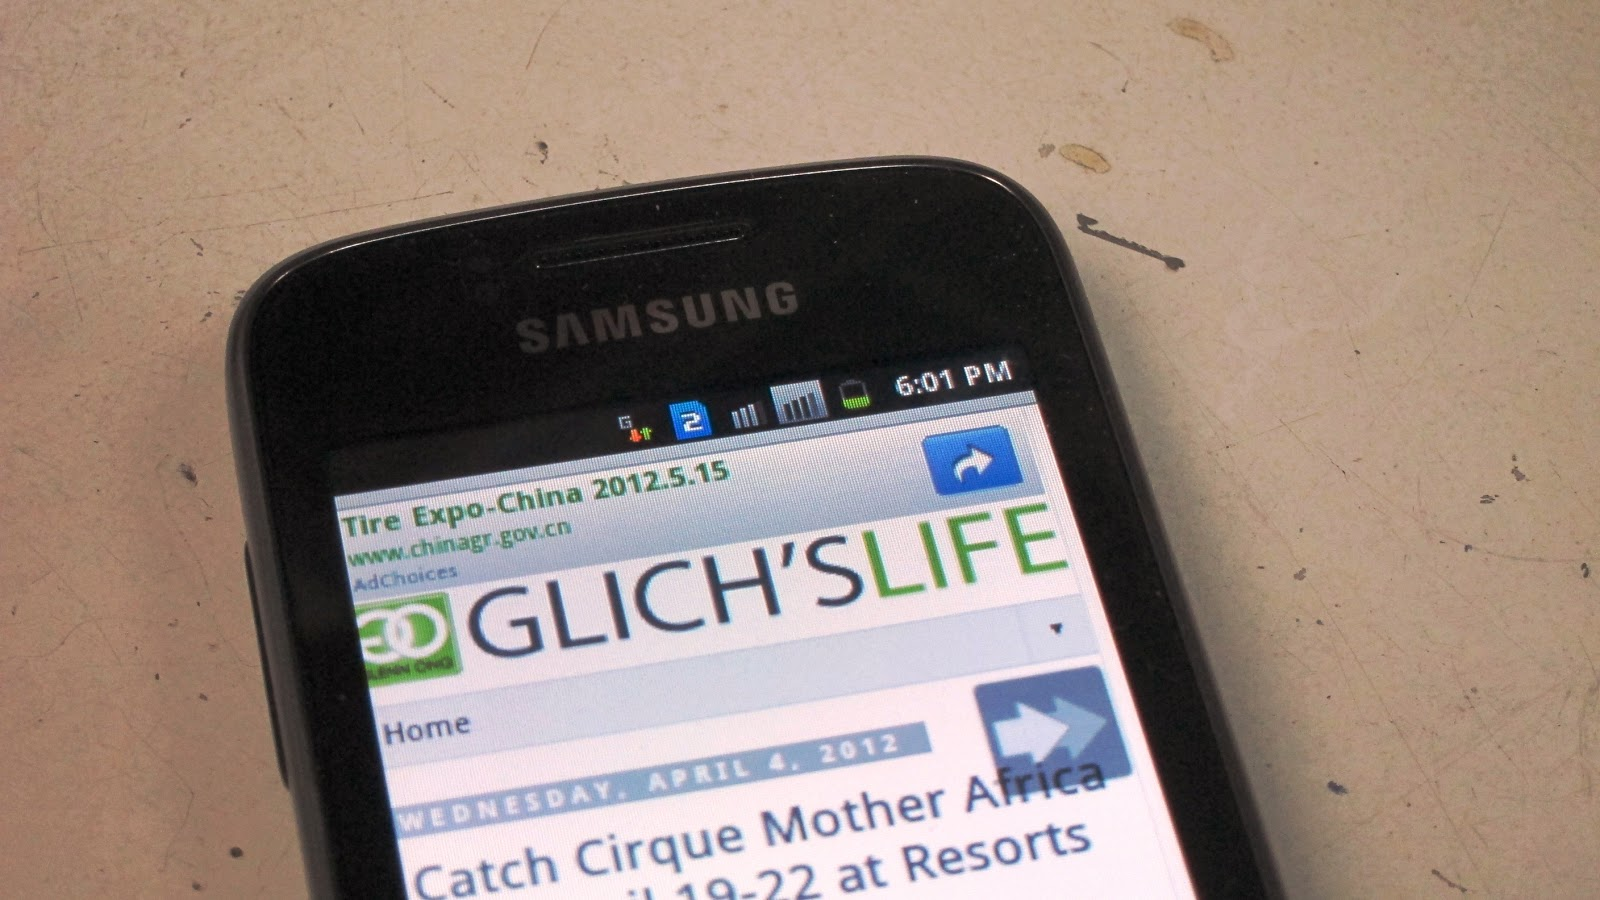 Gallery for gt samsung galaxy s6102 - The Browser Of The Samsung Galaxy Y Duos Is Fast To Load When Coupled With A Steady Internet Connection It Automatically Detected The Mobile Version Of